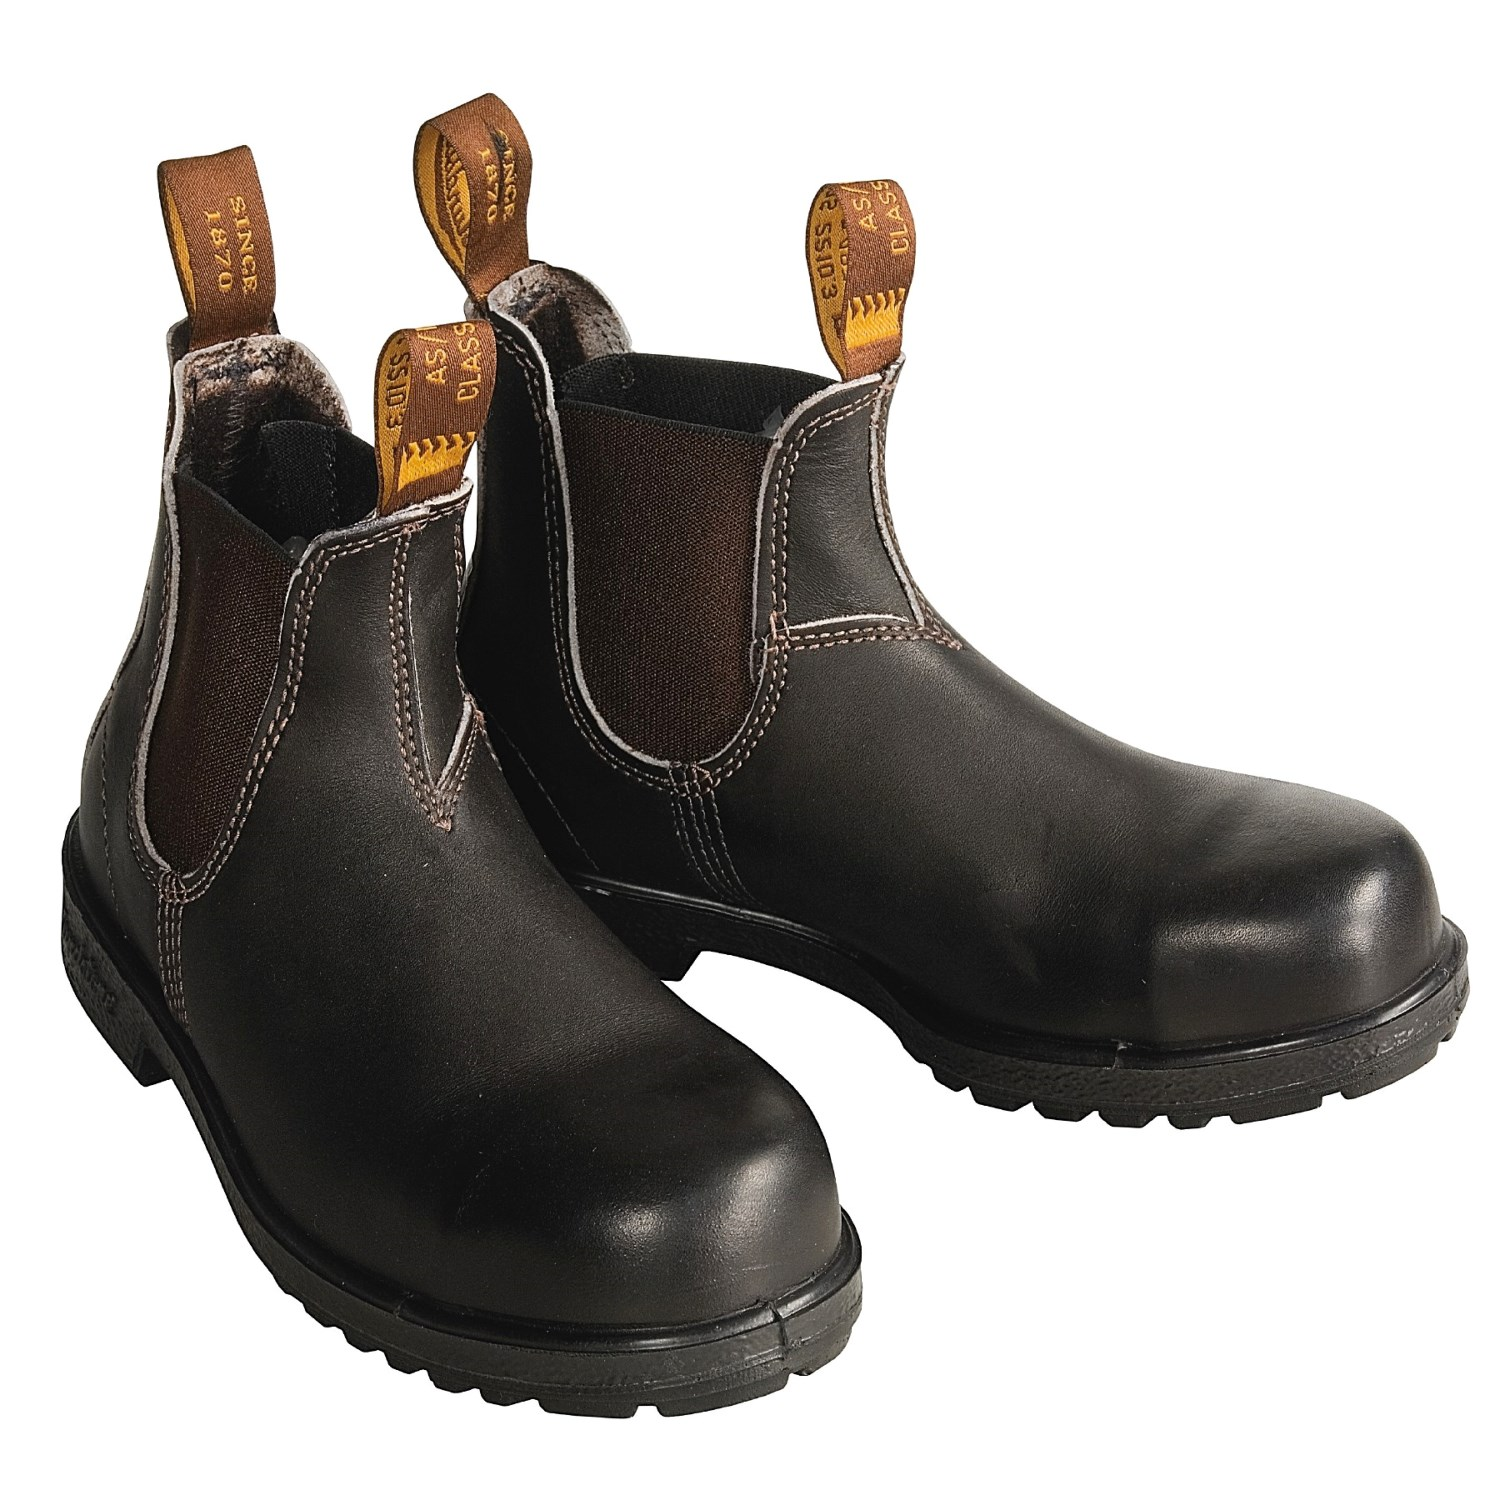 Blundstone Dress Boot Blundstone Bl305 Safety Boots